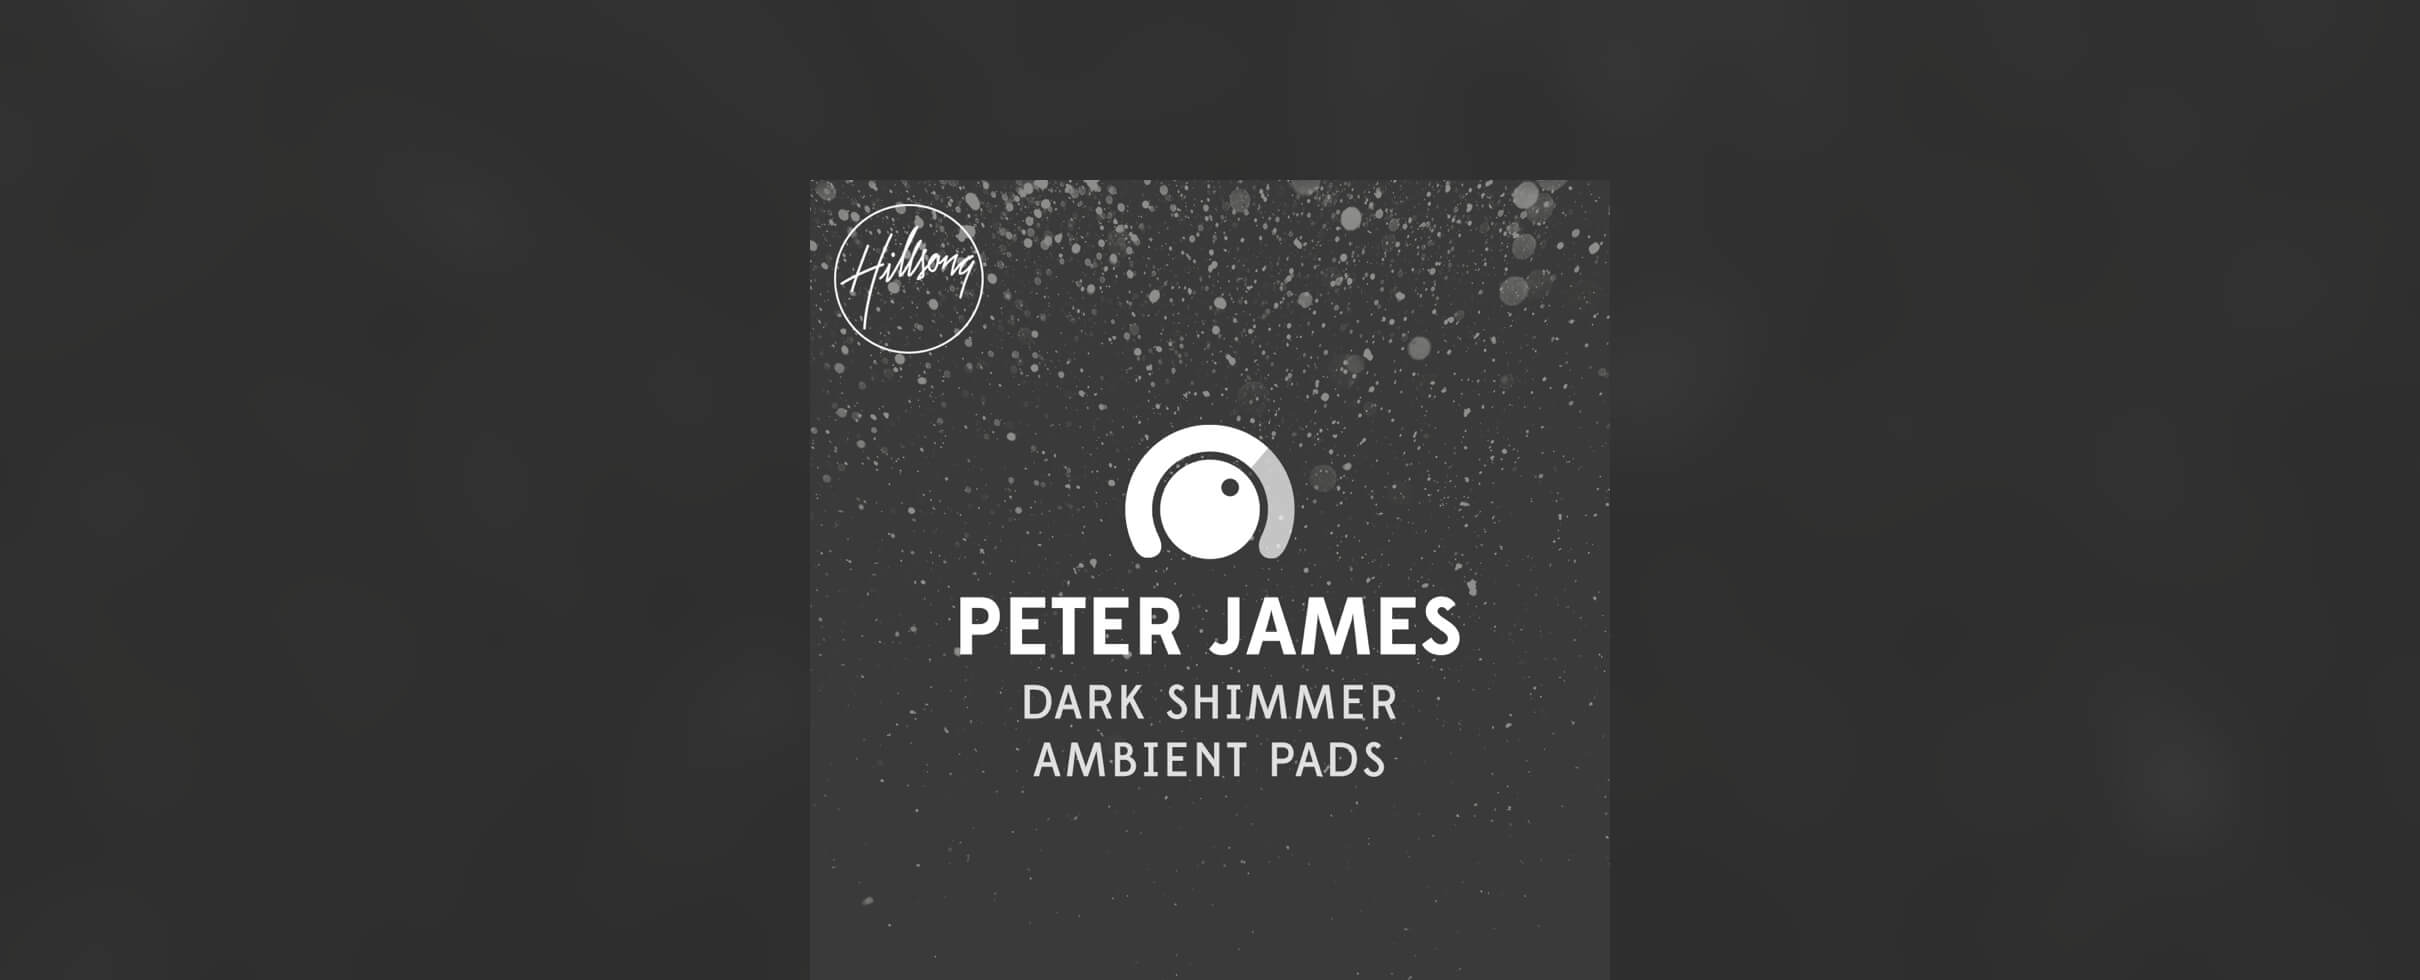 <h1>New Ambient Pad From</h1> <strong>Peter James</strong>